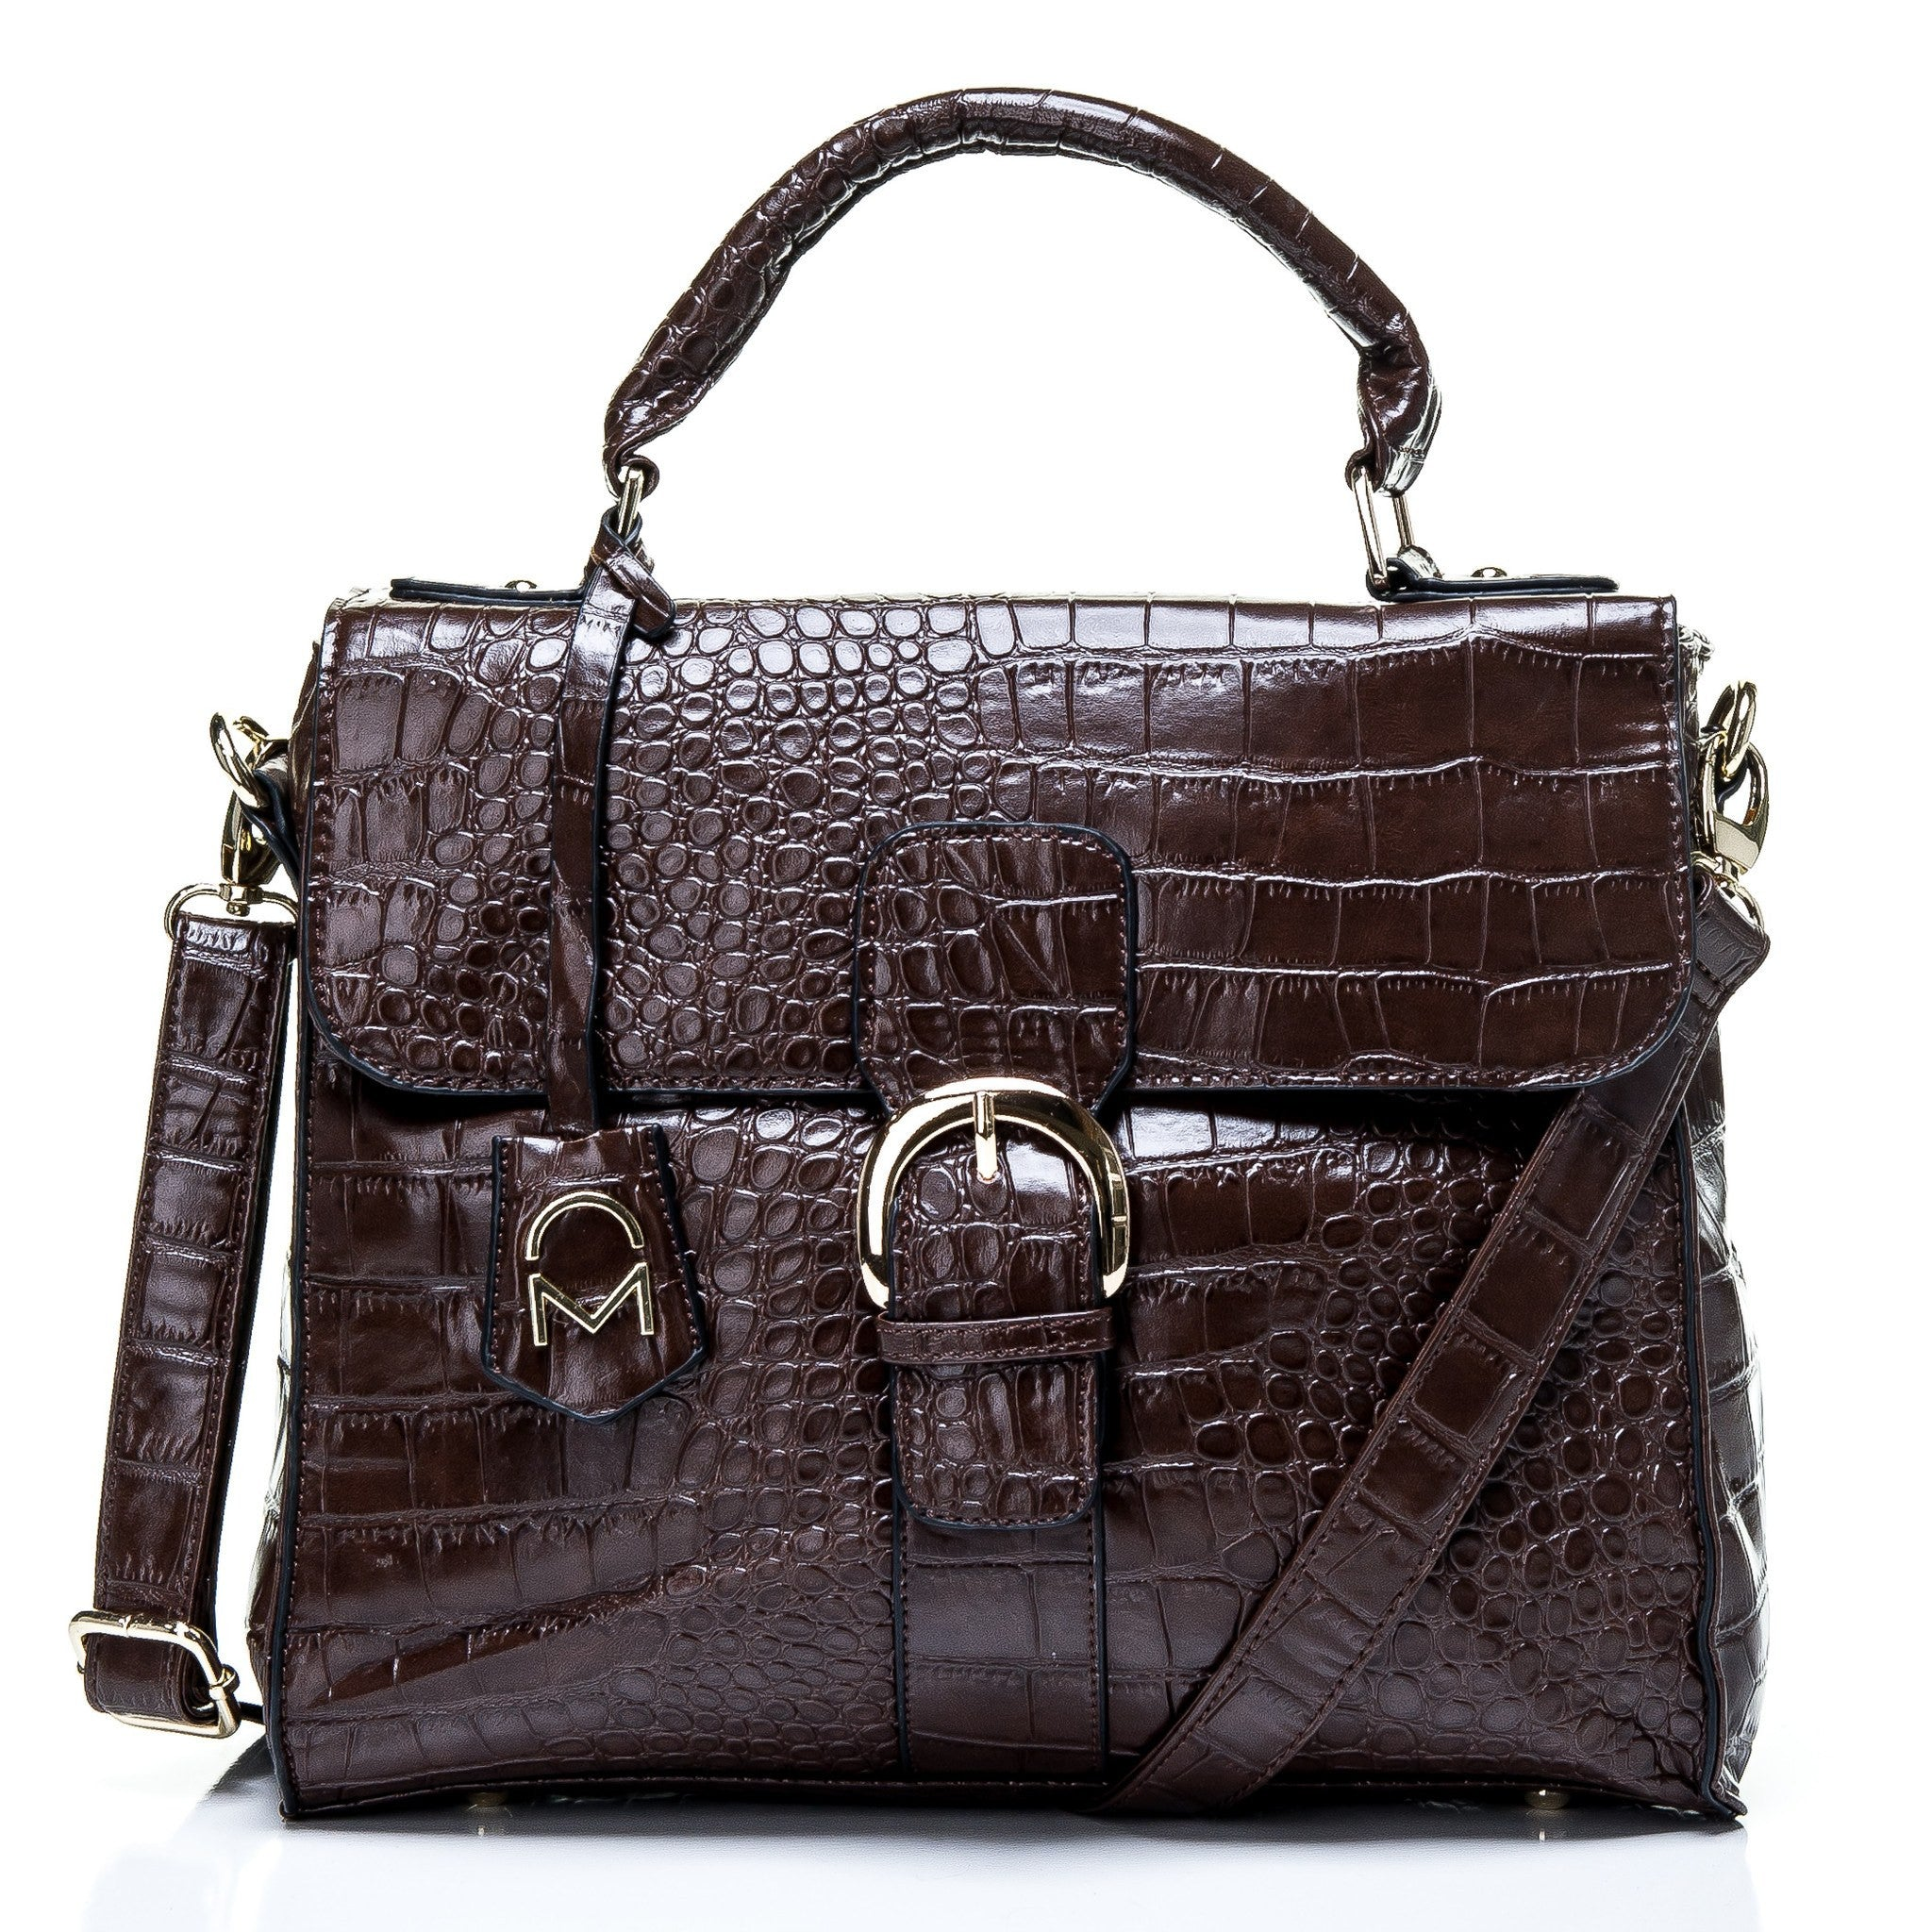 Bourbon Satchel